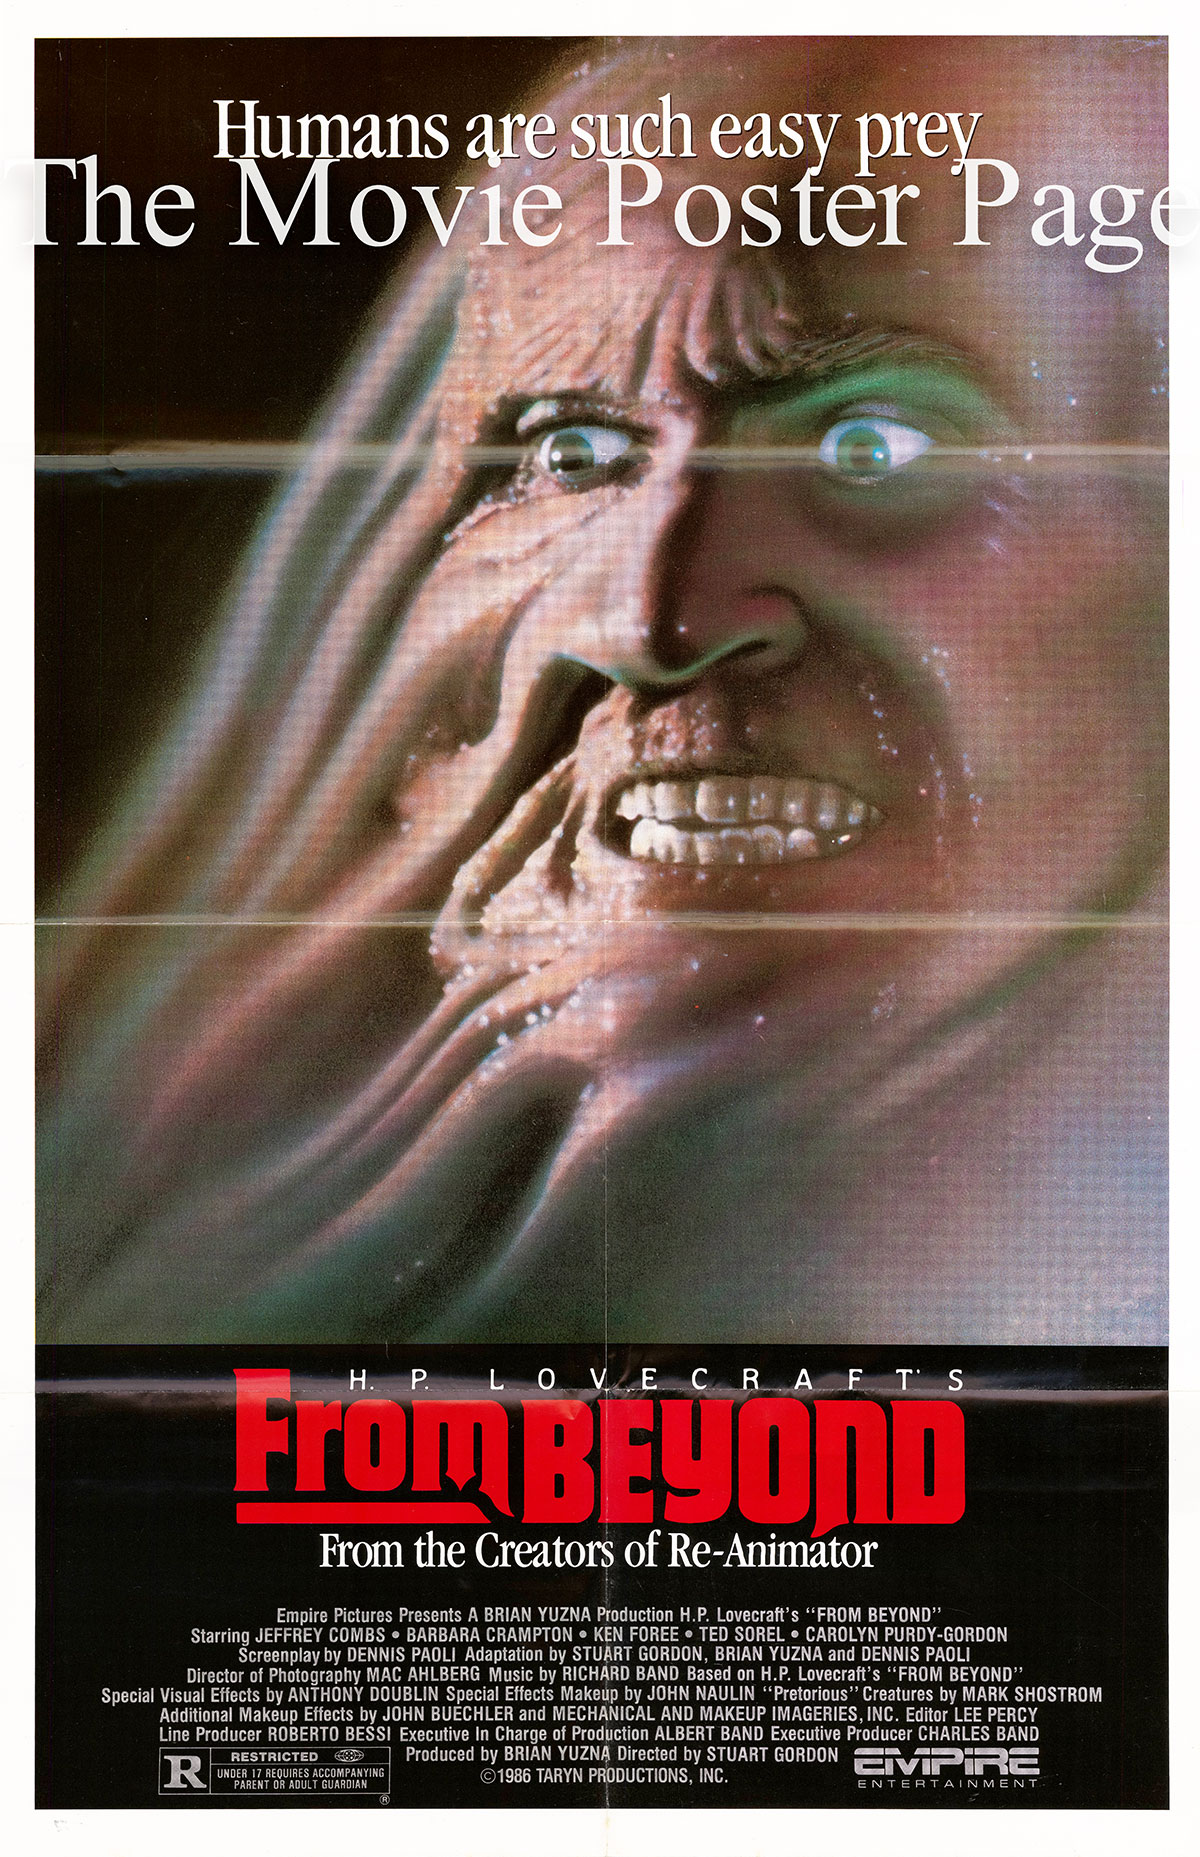 Pictured is a US one-sheet poster for the 1986 Stuart Gordon film From Beyond starring Jeffrey Combs as Crawford Tillinghast.